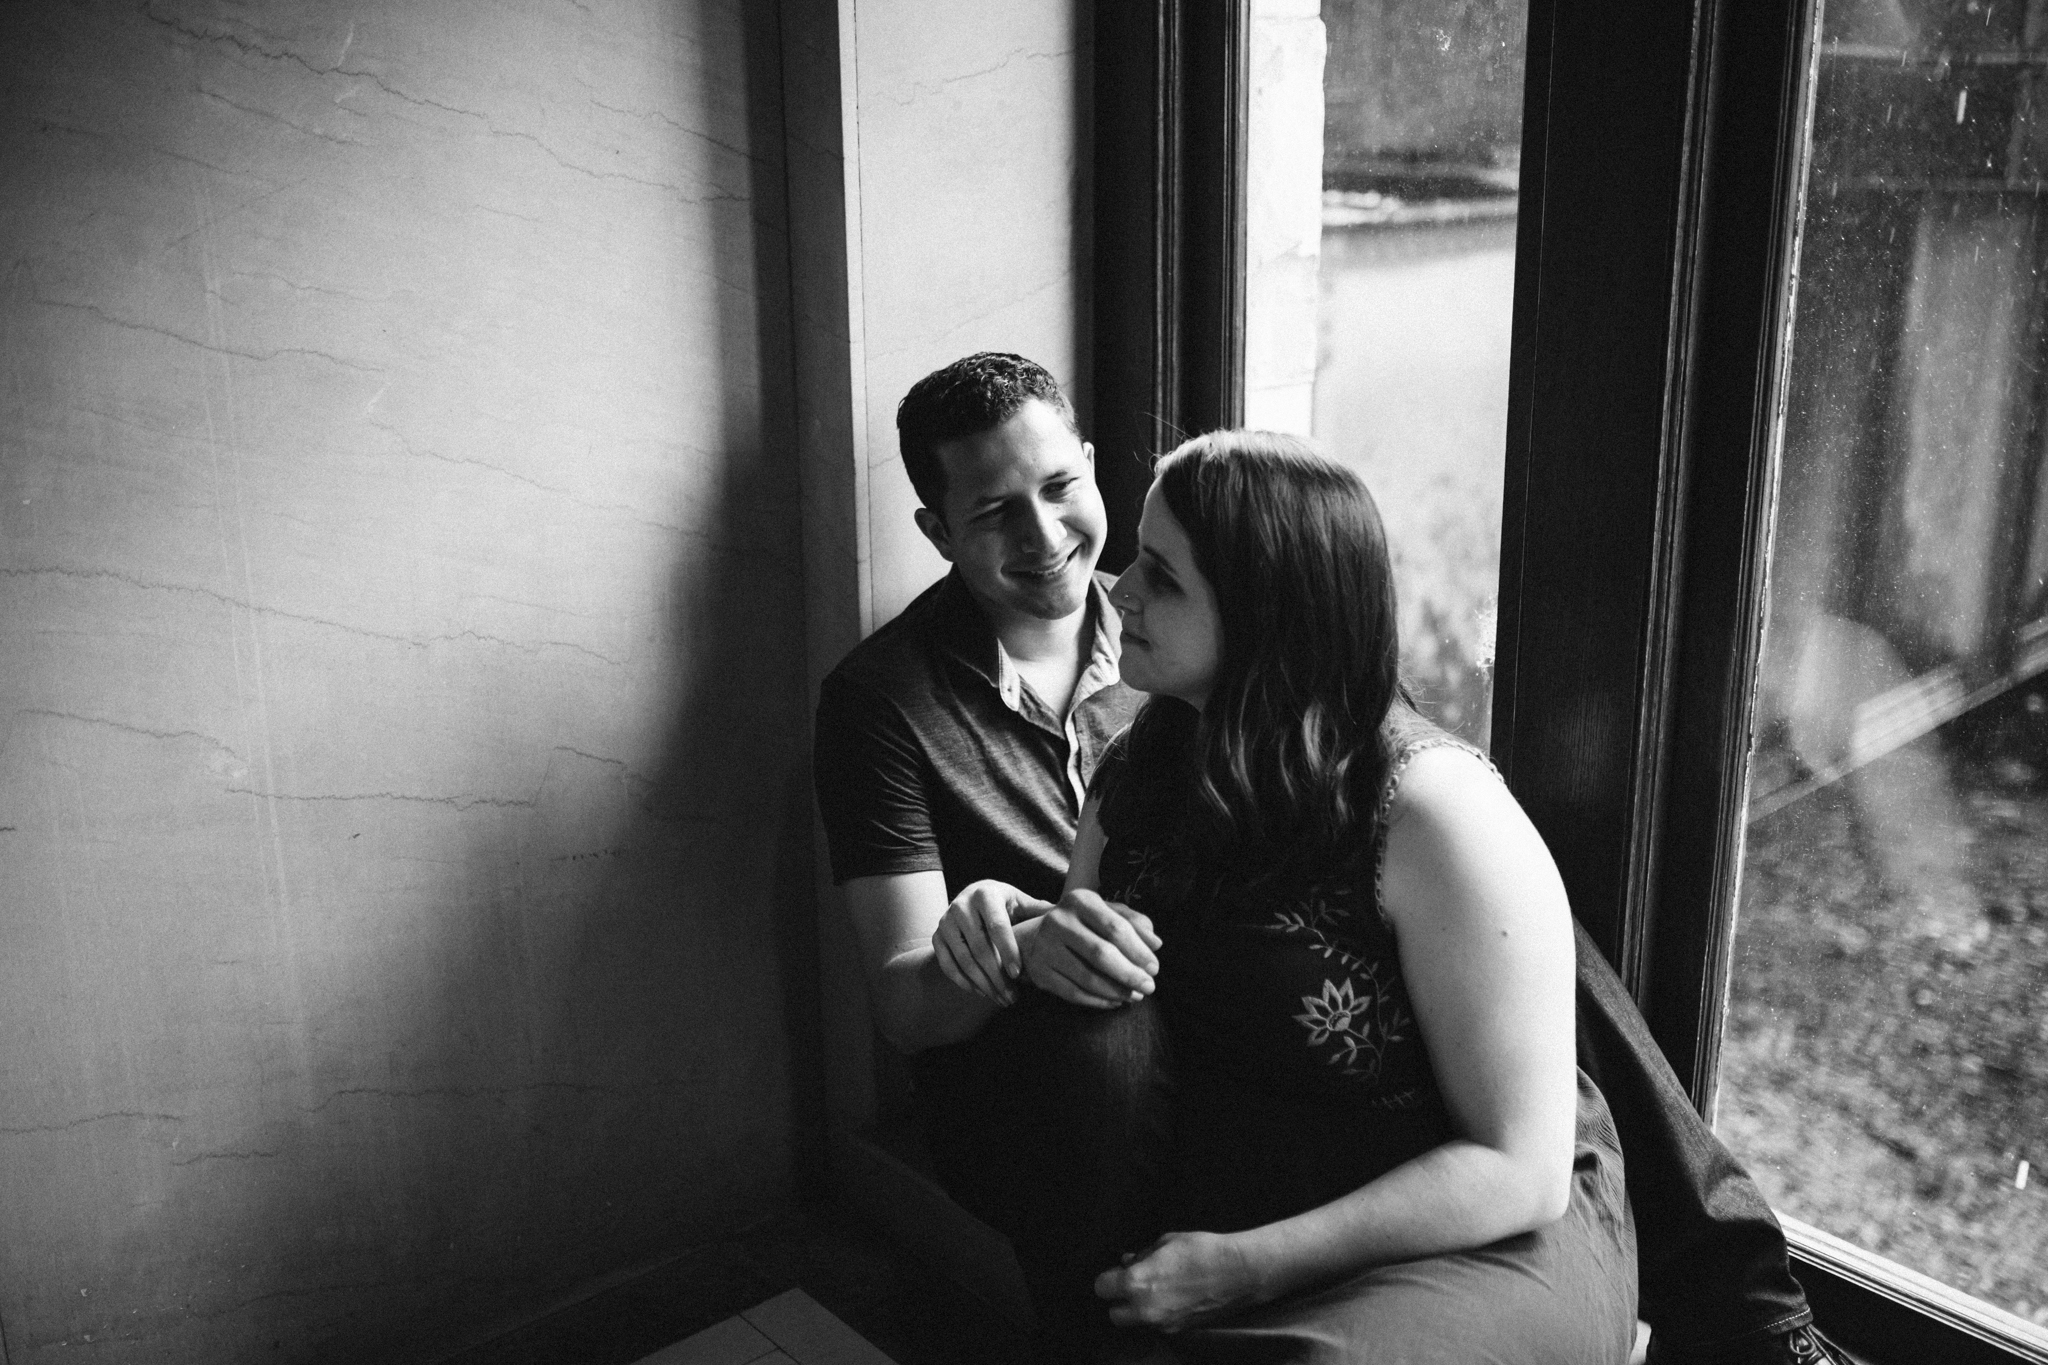 rachel_alex_richmond_engagement_session_mainstreetstation_rebeccaburtphotography.jpg